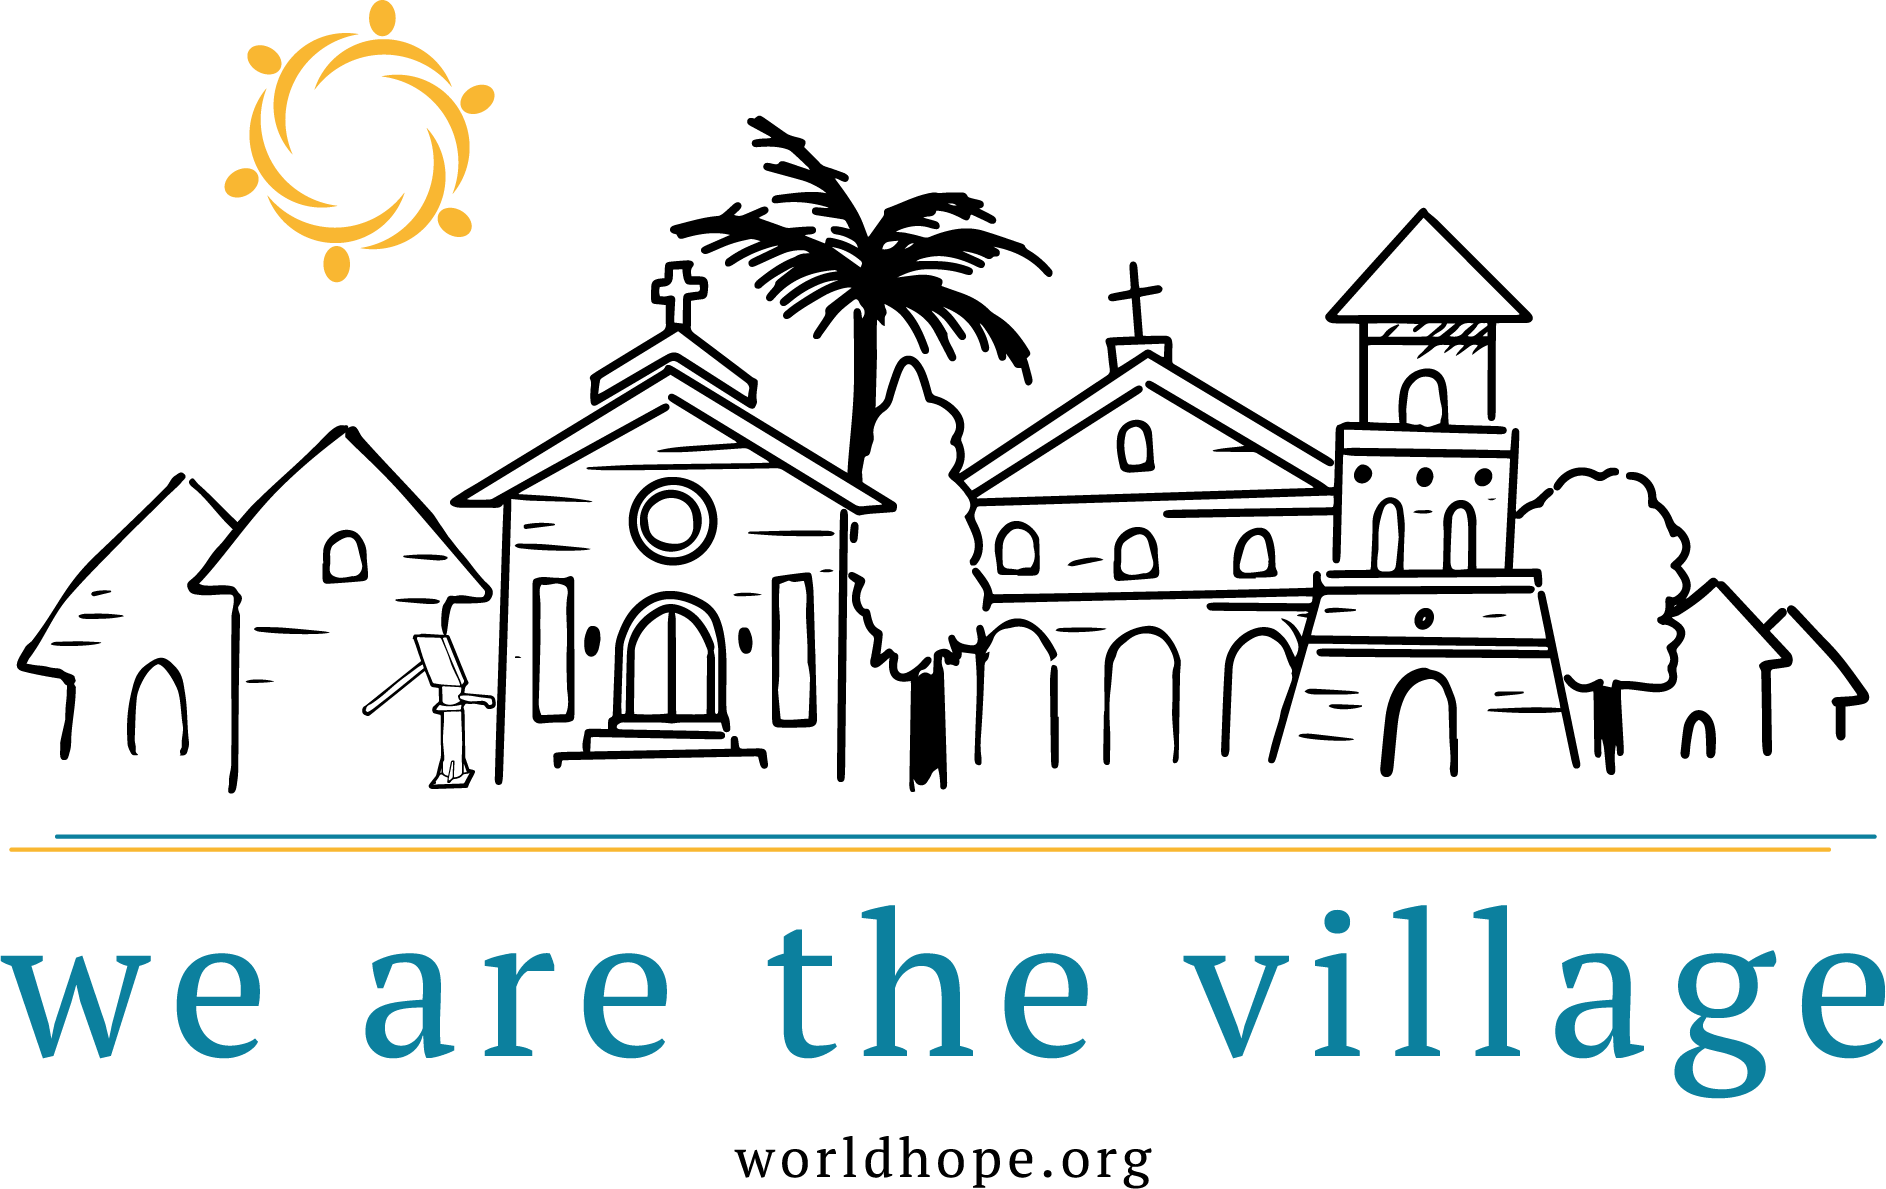 We Are the Village